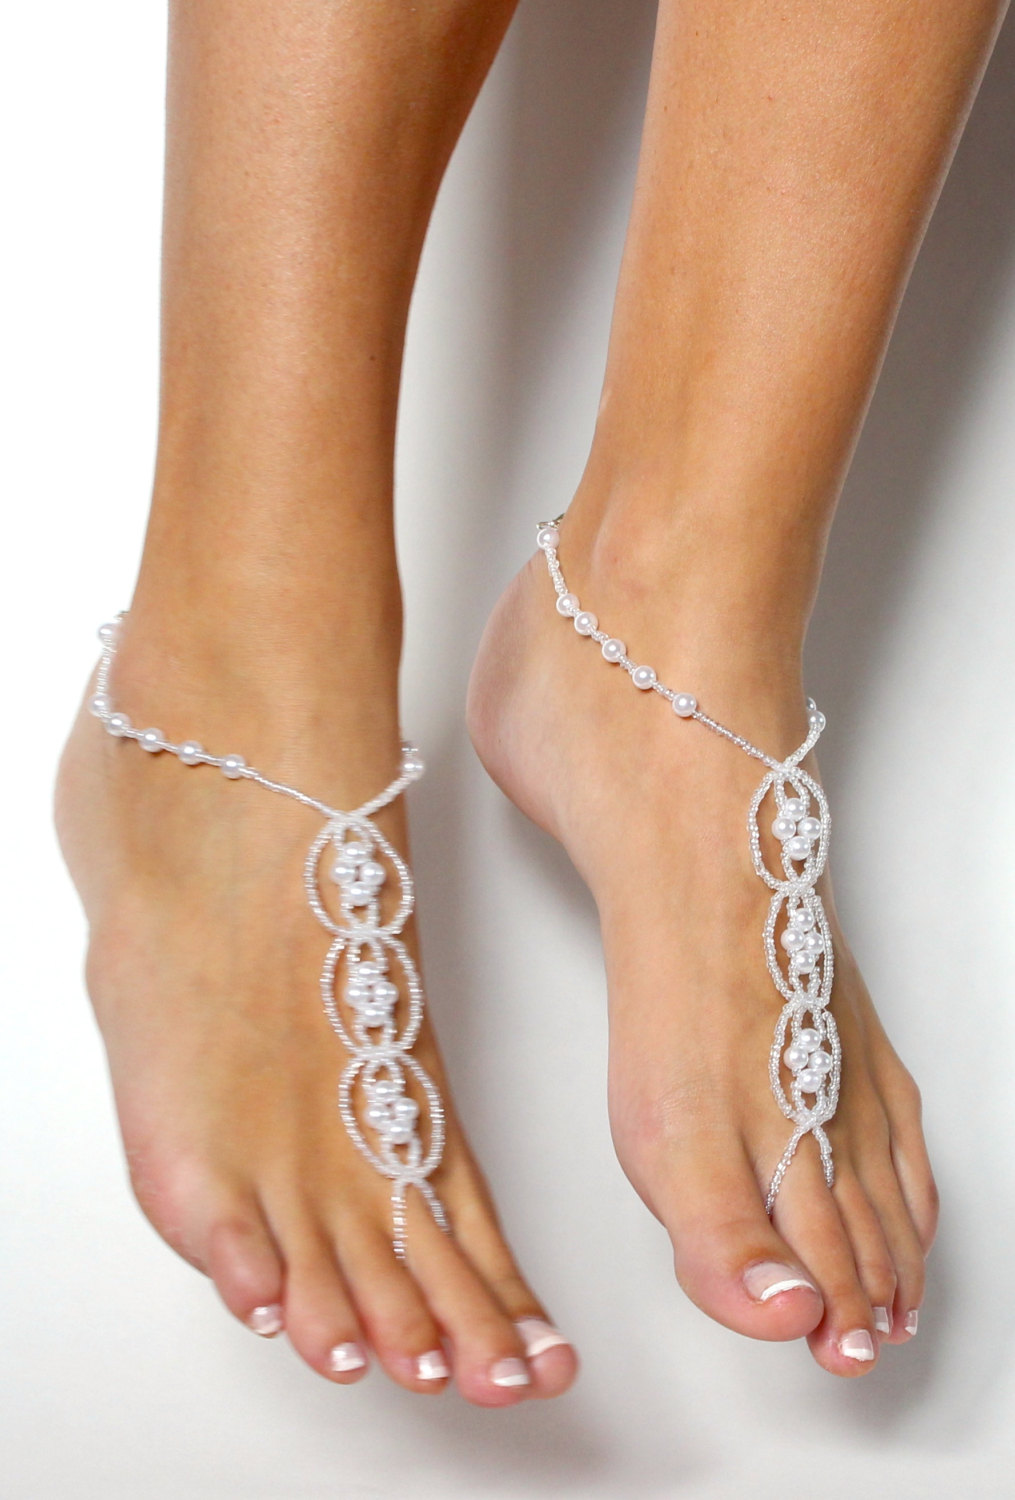 bb8f476b8754 ... Pearl Destination Wedding Shoes White Beaded Barefoot Sandals Shoeless  Sandals Anklet Foot Jewelry - Thumbnail 2 ...